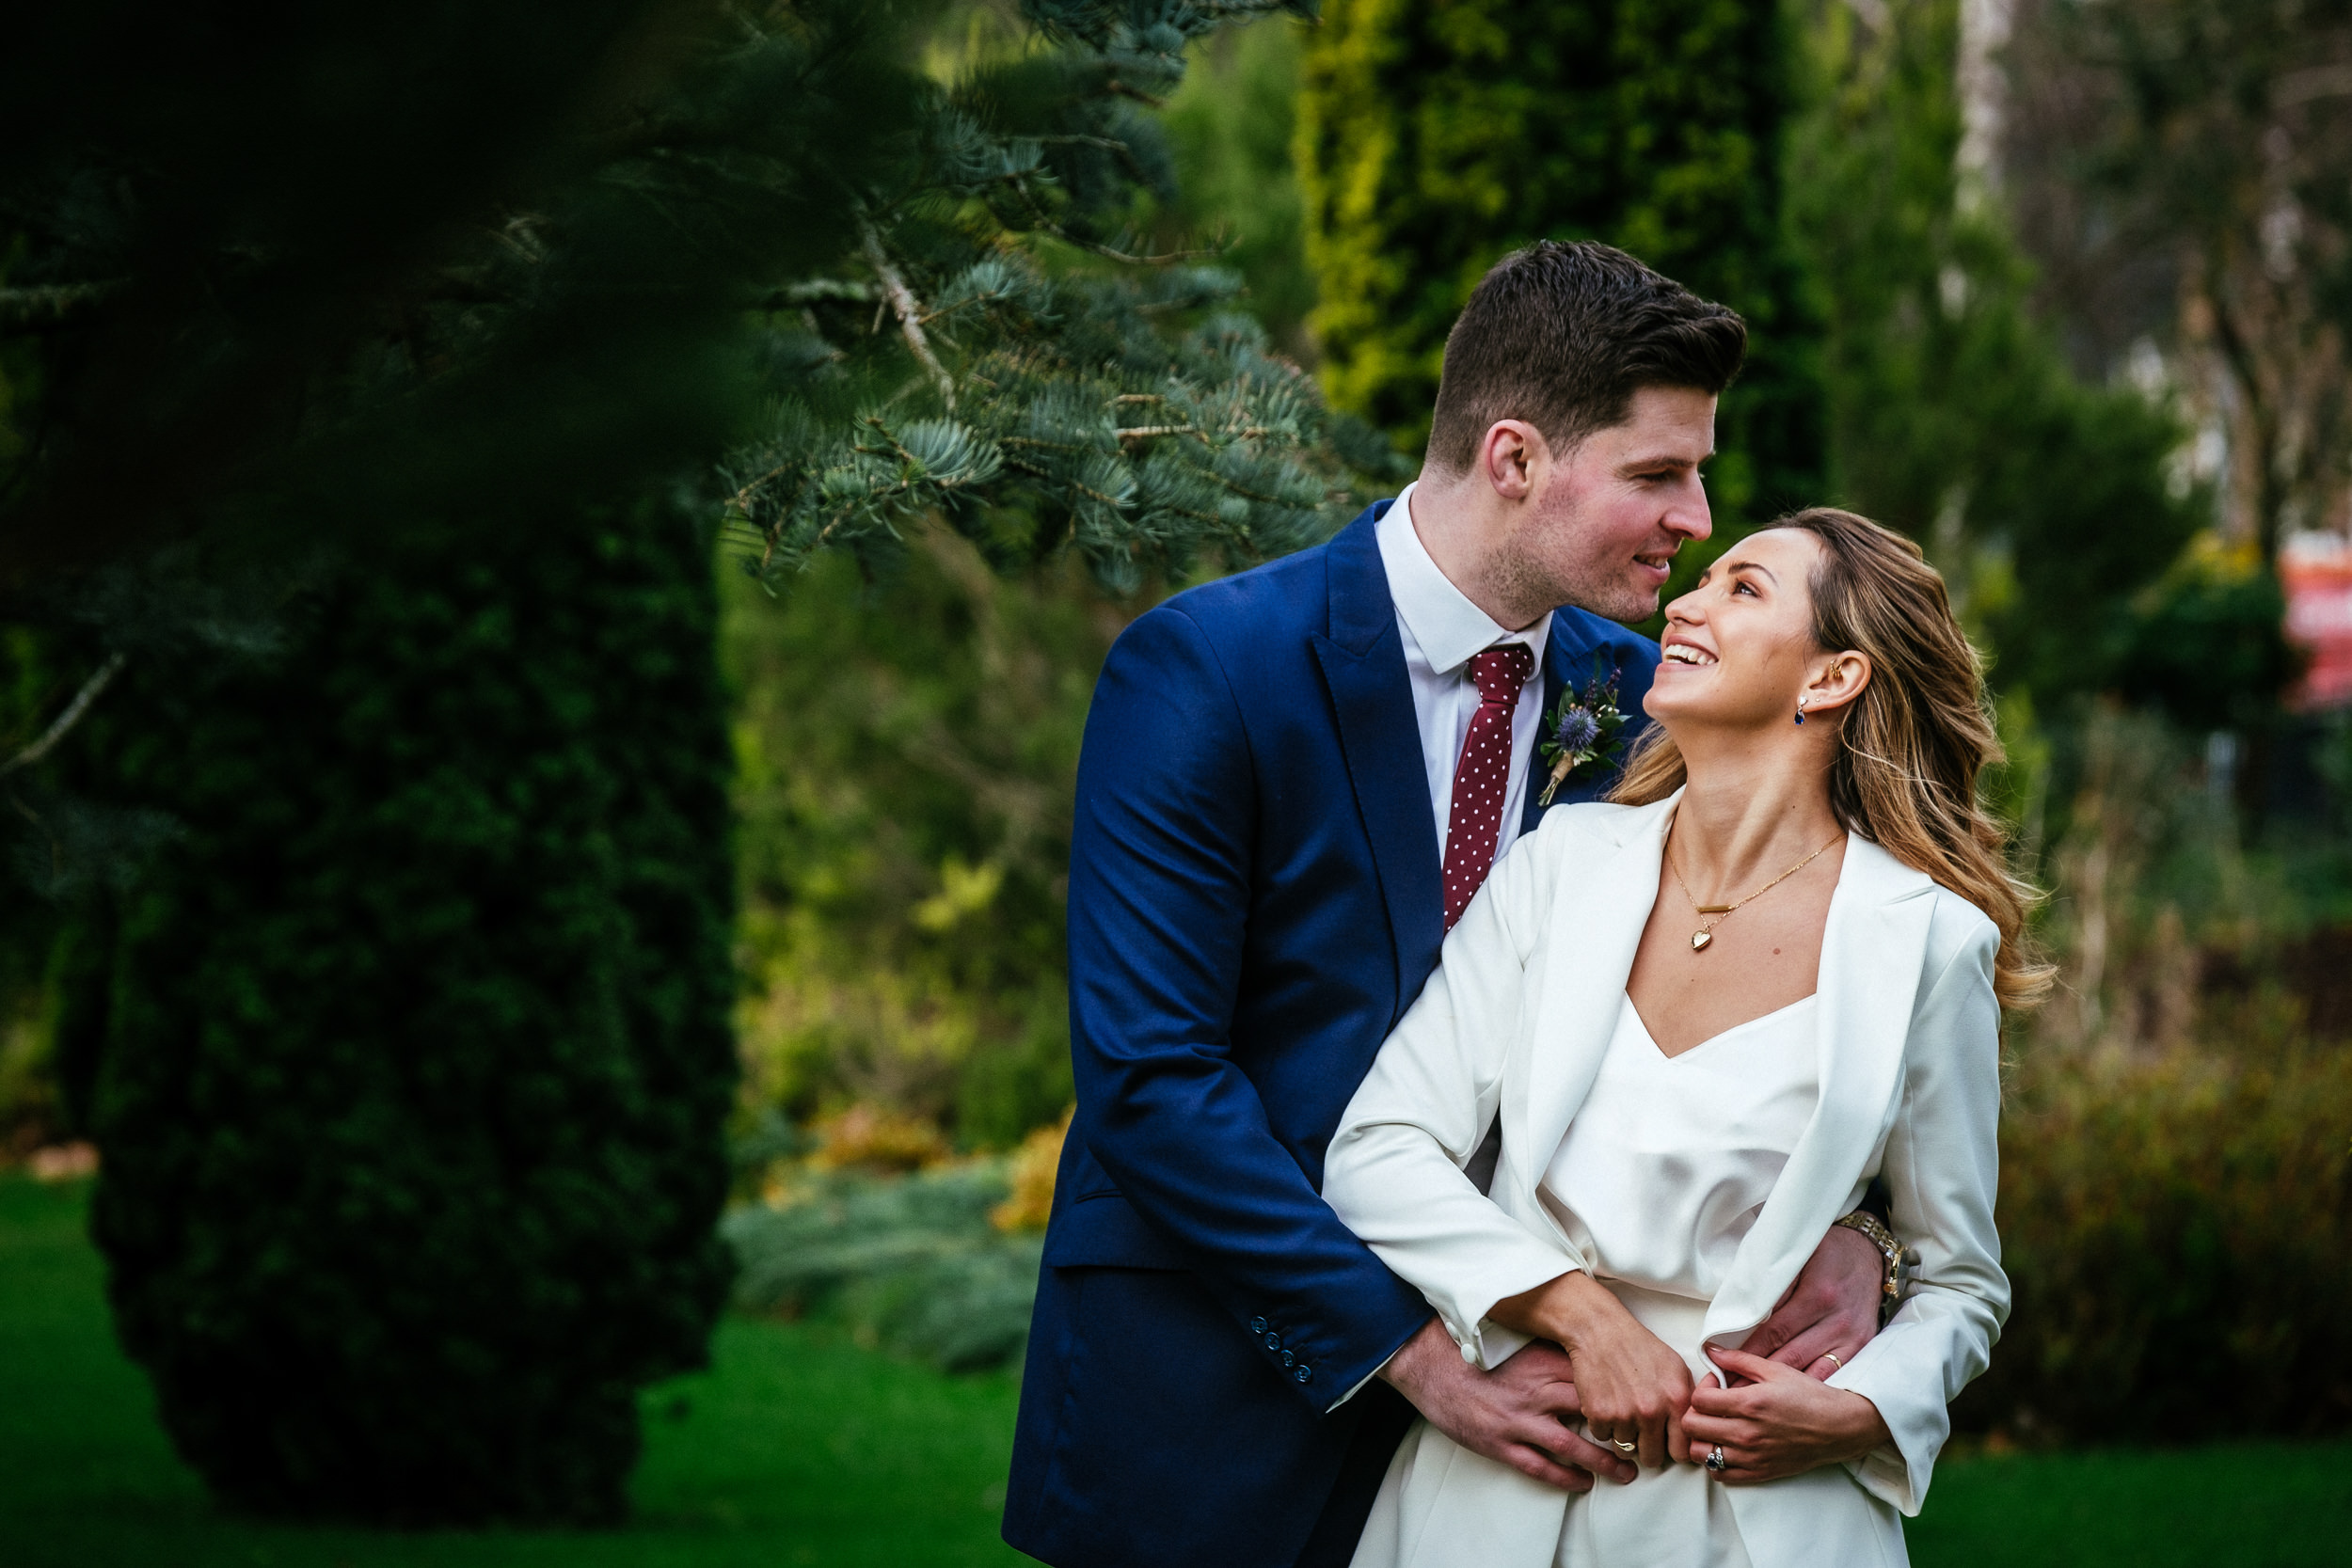 Dublin registry office wedding Photographer 19